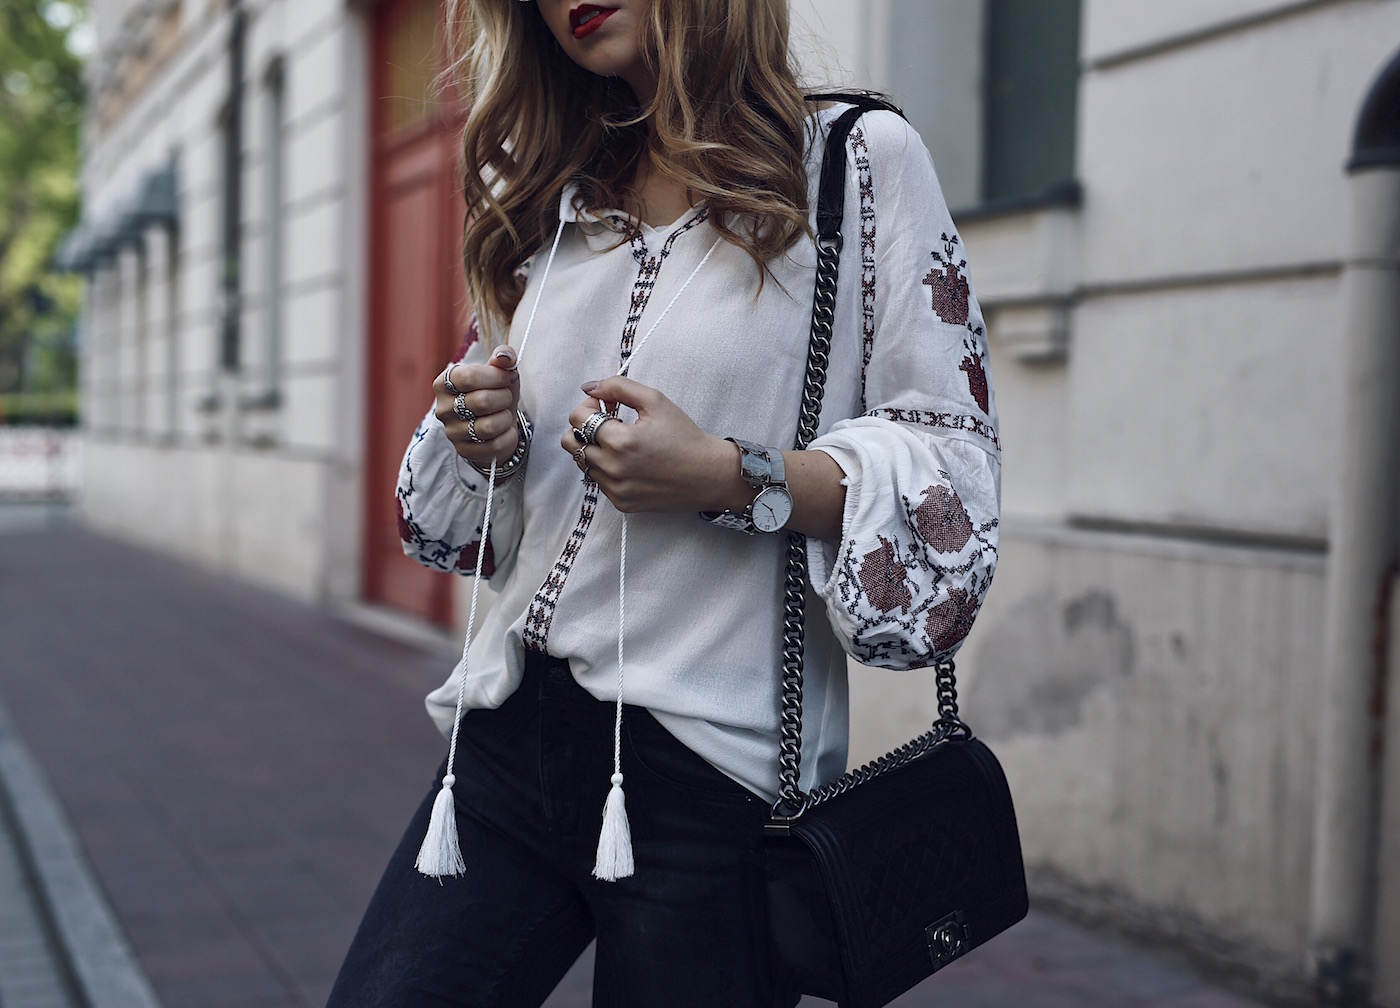 Miu Miu Look Alike Shoes with Embroidered Folklore Blouse | Want Get Repeat